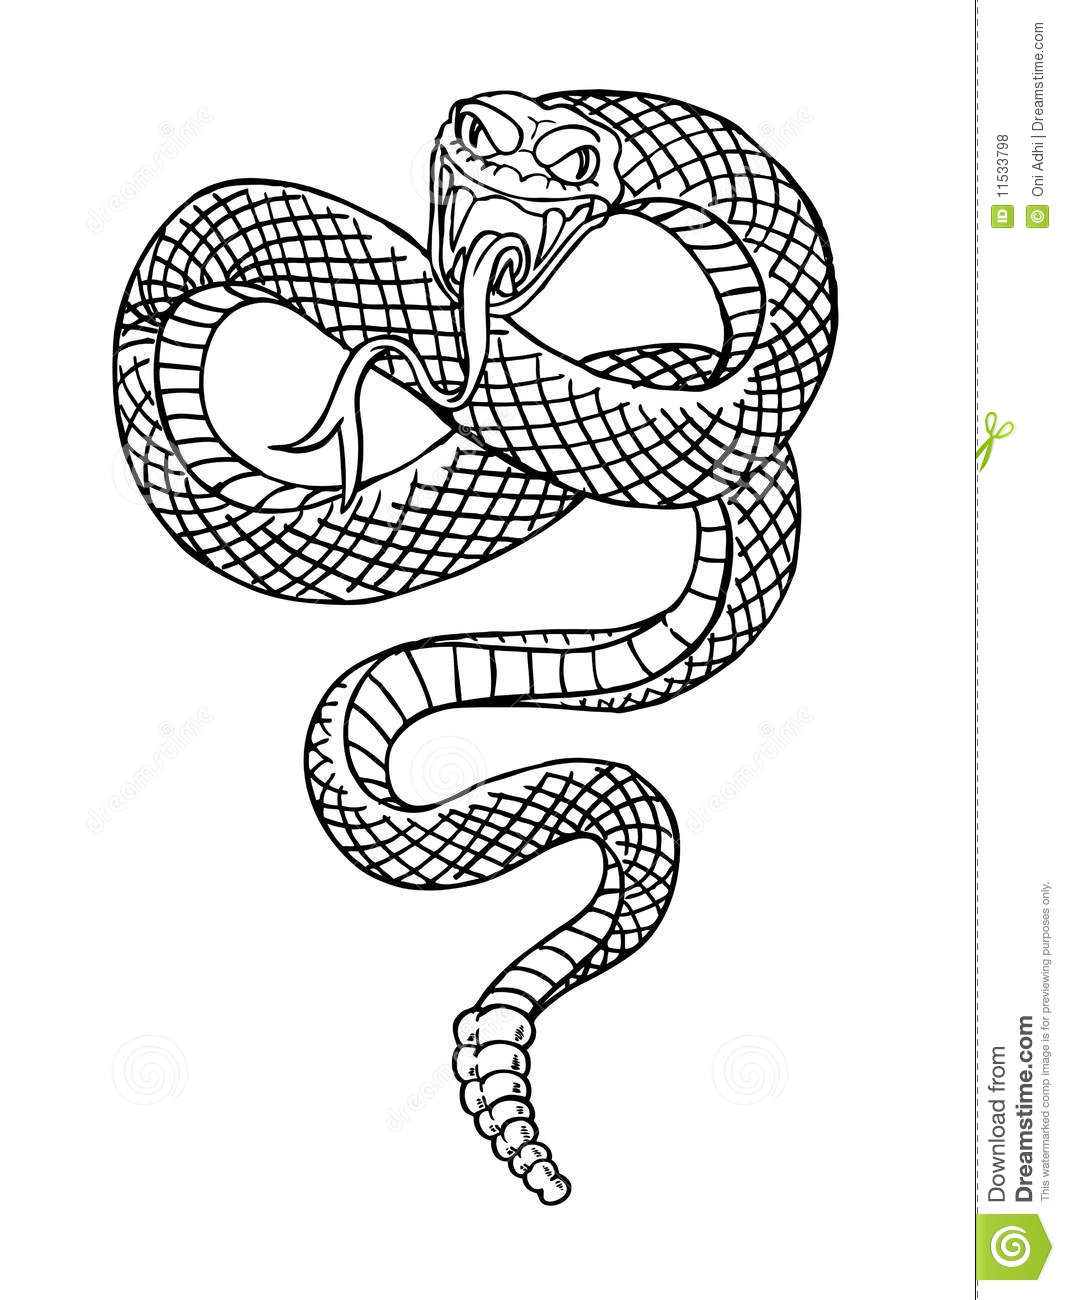 Evil Serpent Drawing snake royalty free stock photos - image: 11533798